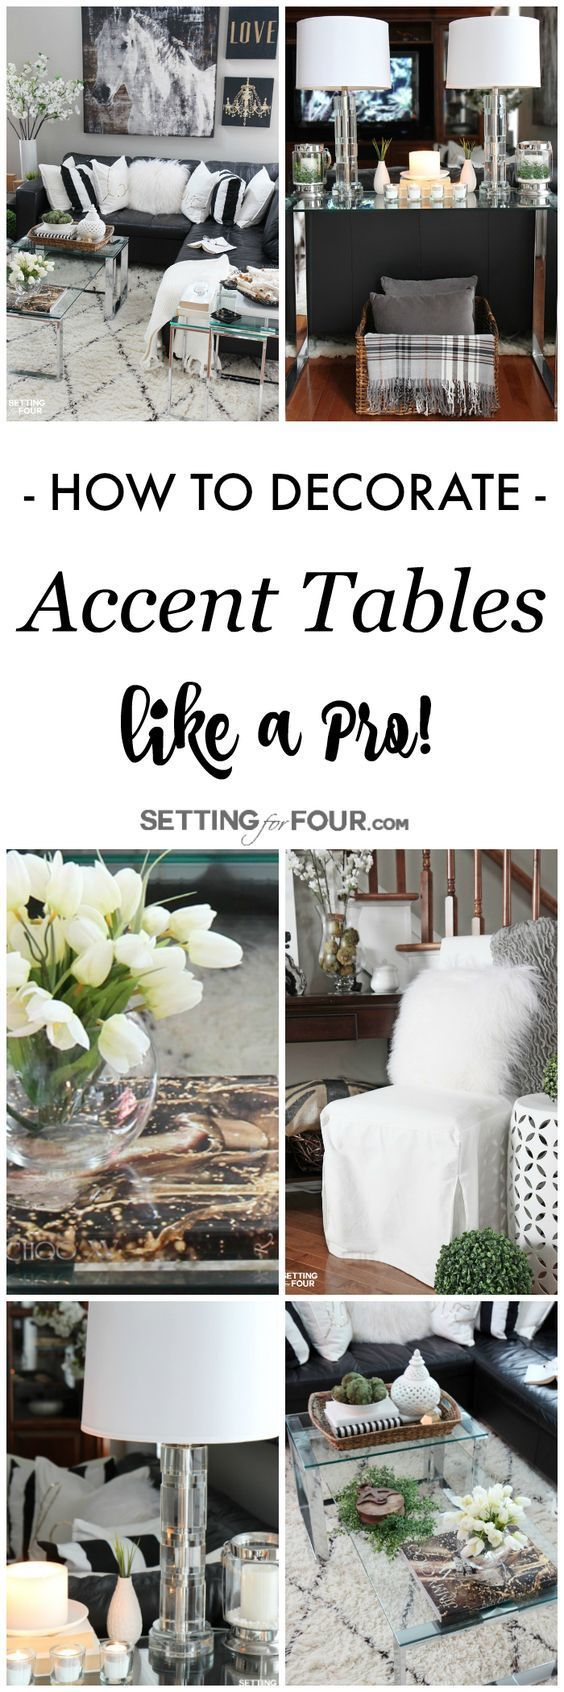 5 TIPS TO DECORATE ACCENT TABLES LIKE A PRO